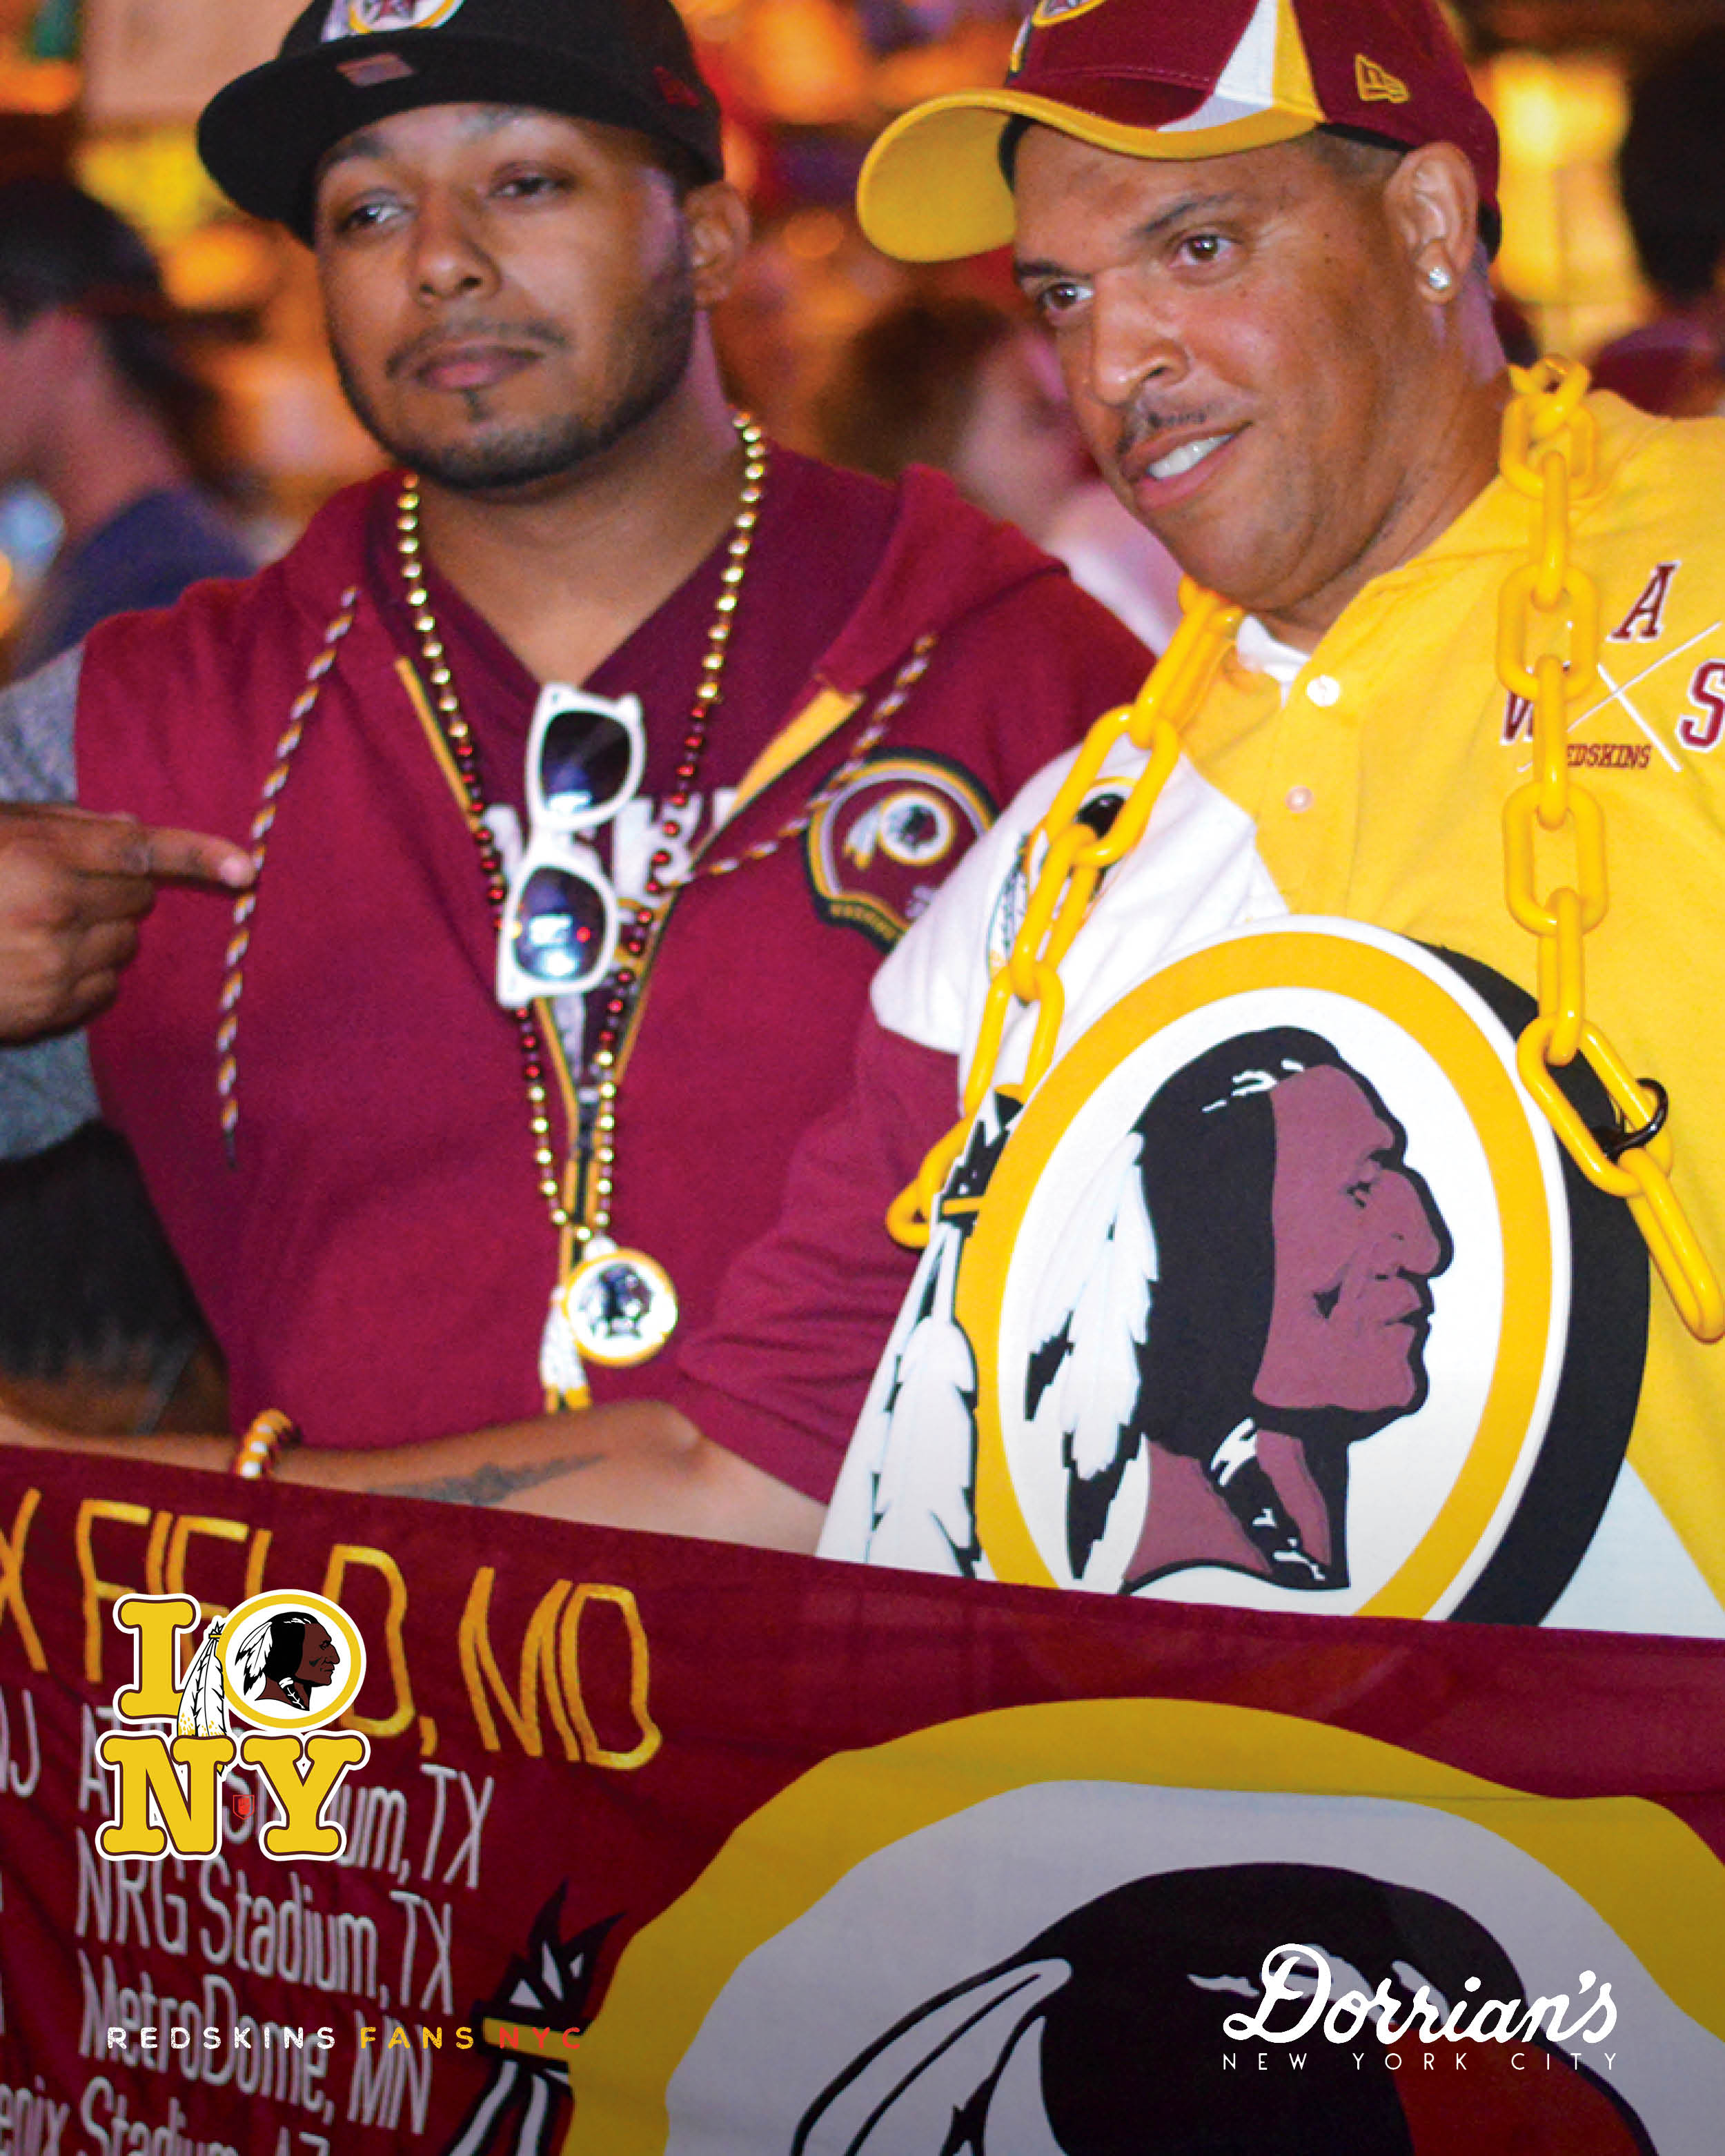 drh_nyc-2018-insta-redskins-imgs-road-rally-series-2.jpg